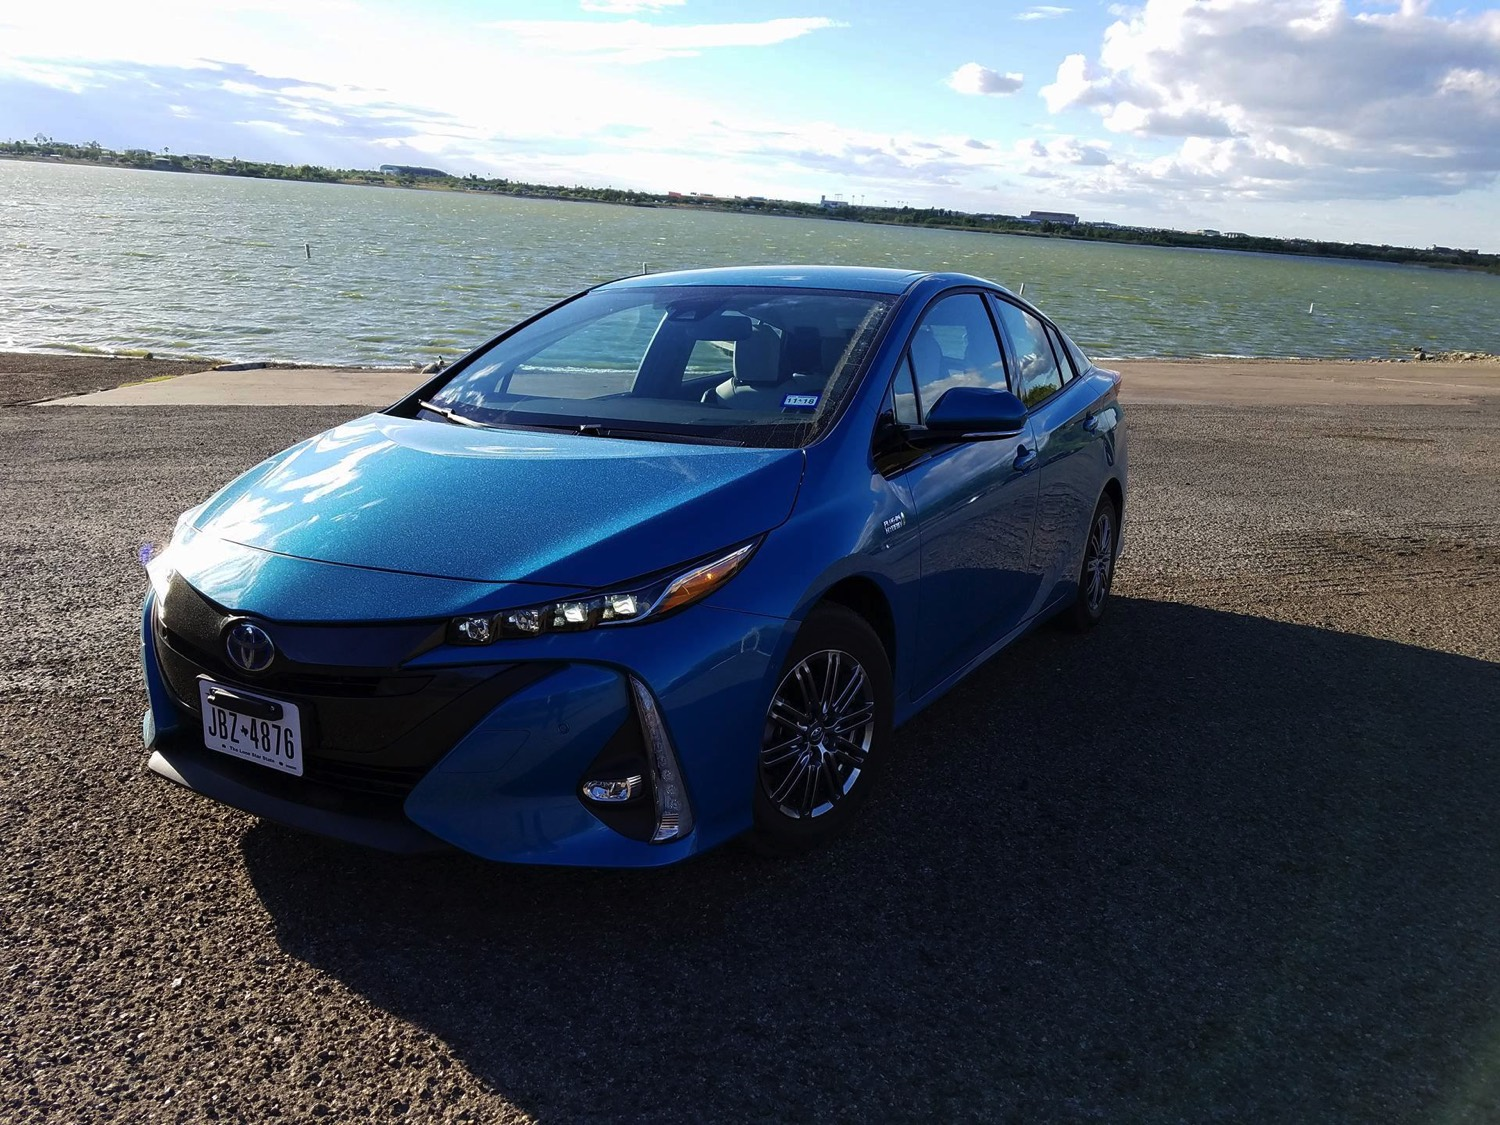 2017 toyota prius prime plug in hybrid cooler than you think txgarage. Black Bedroom Furniture Sets. Home Design Ideas